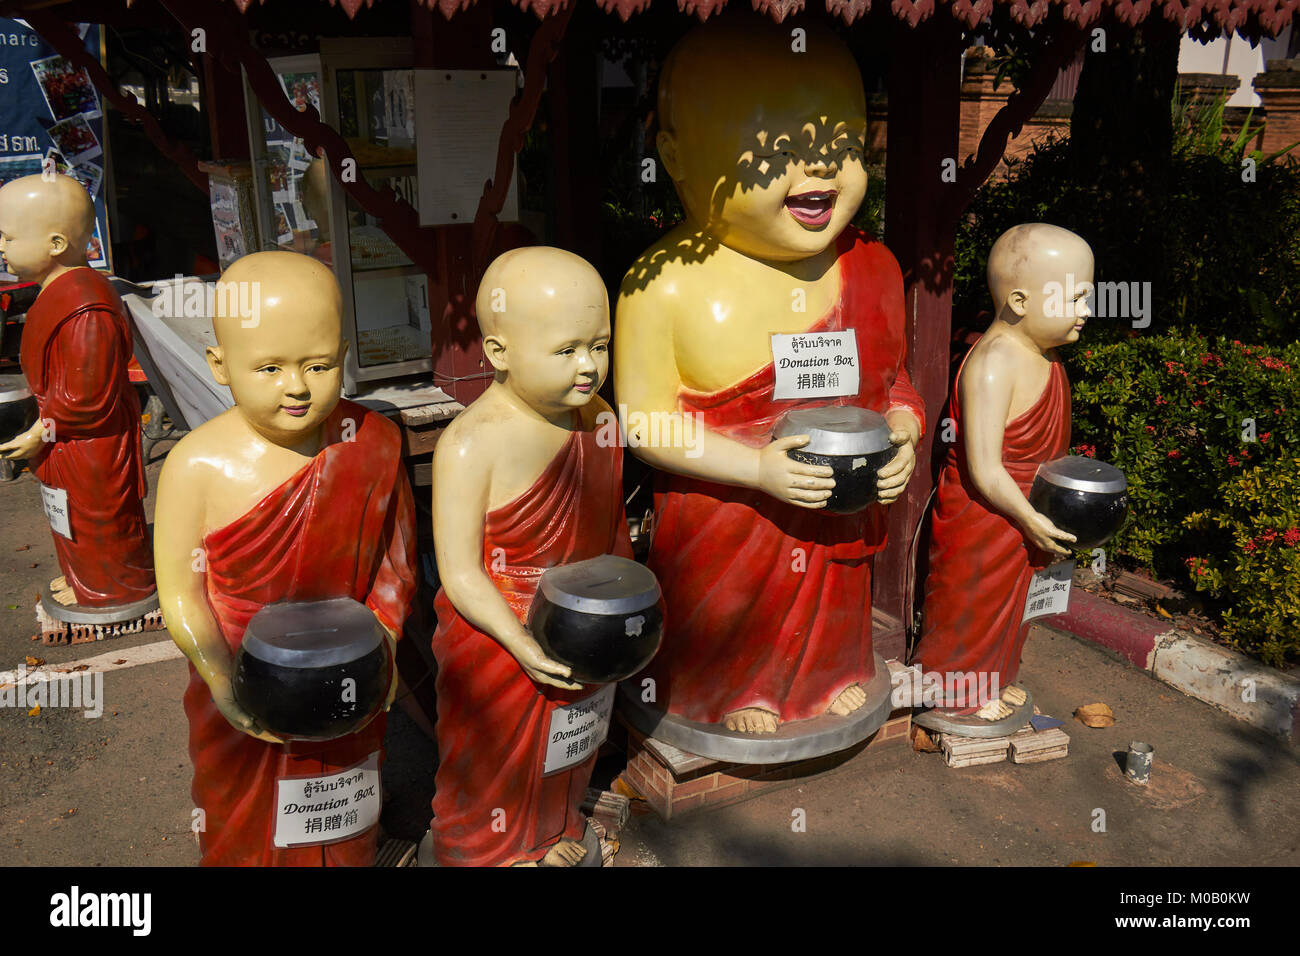 begging monk figures, Wat Chedi Luang temple and grounds, Chiang Mai, Thailand - Stock Image